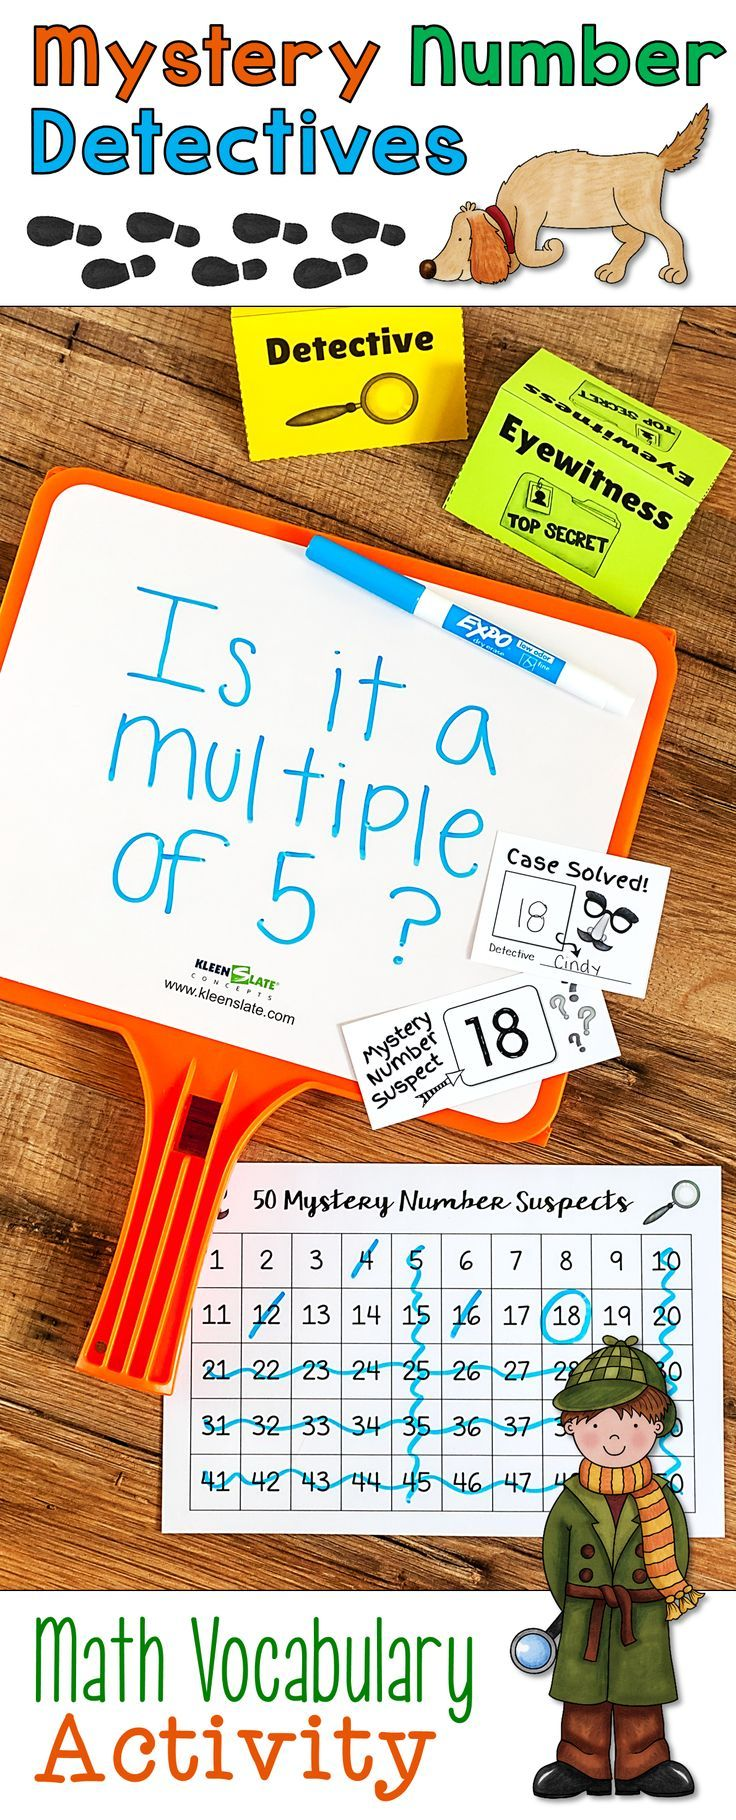 Mystery Number Detectives is an exciting math vocabulary game your students will BEG to play, and the activity is so much fun they won't even realize they're reviewing math vocabulary! Includes teacher's guide, game boards, task cards, activity directions, math word wall cards, and task card images for Plickers.